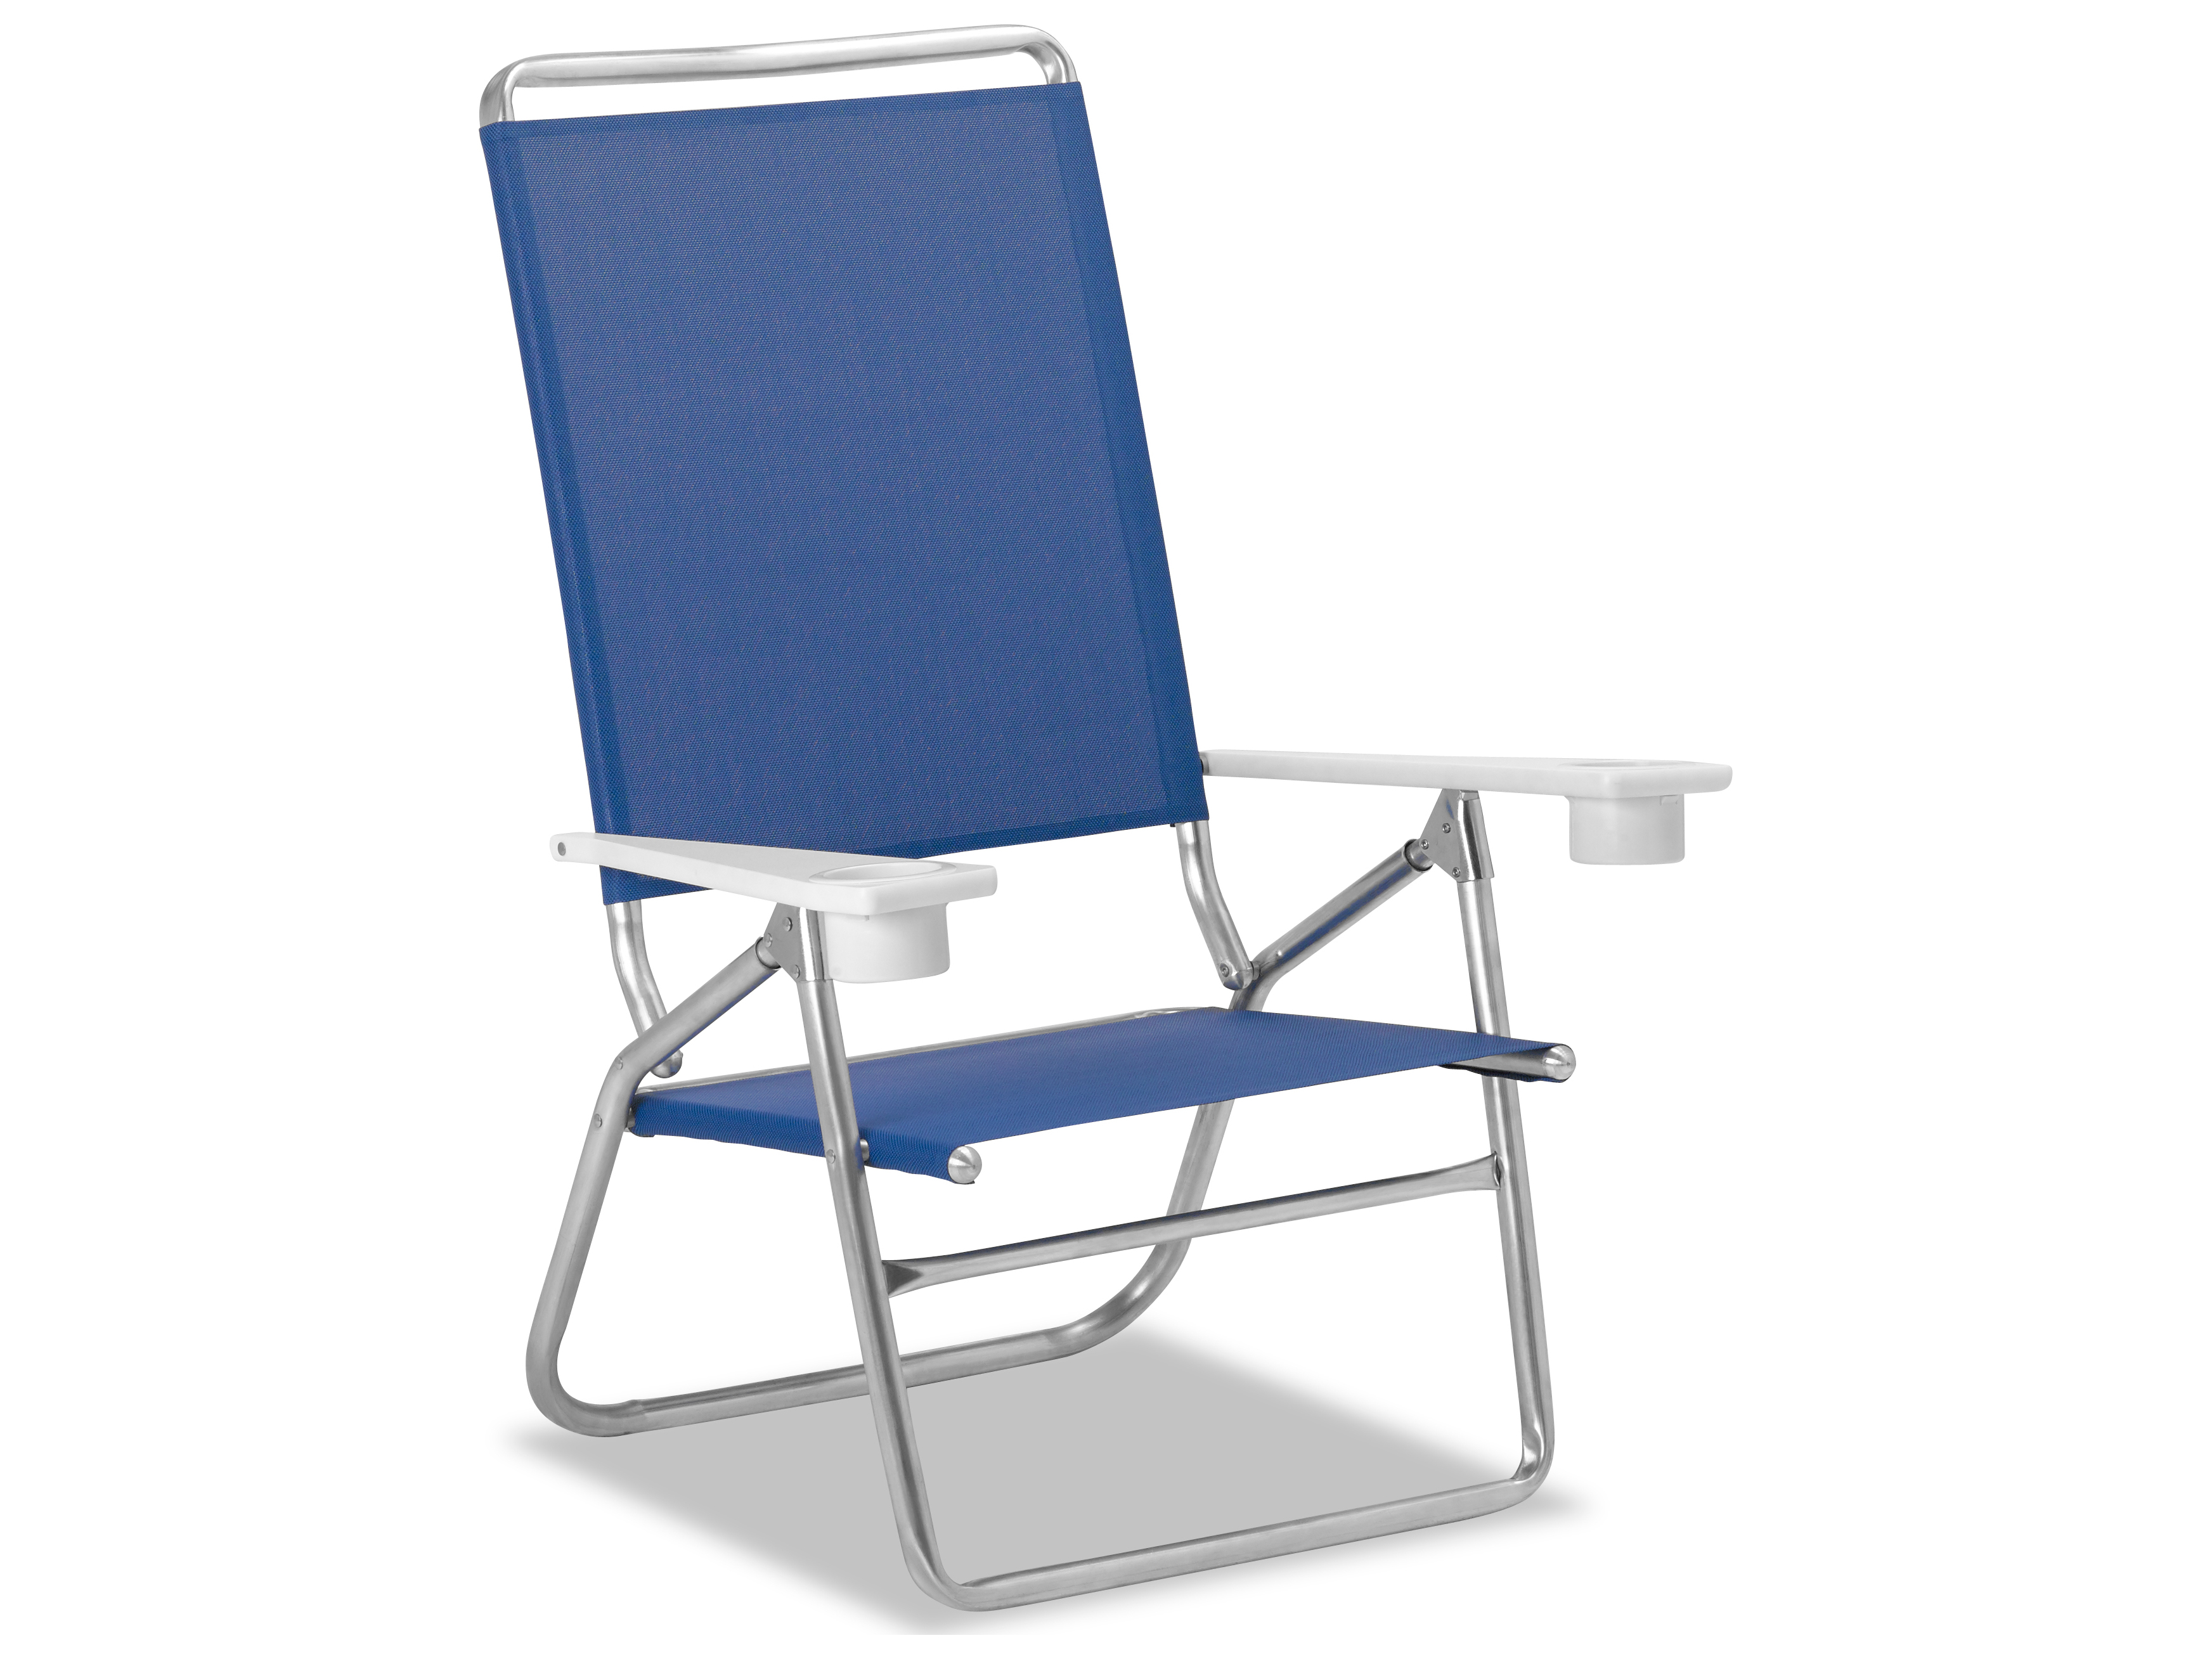 Telescope Beach Chair Telescope Casual Beach And Aluminum Light N Easy High Boy With Mgp Arms With Cup Holders